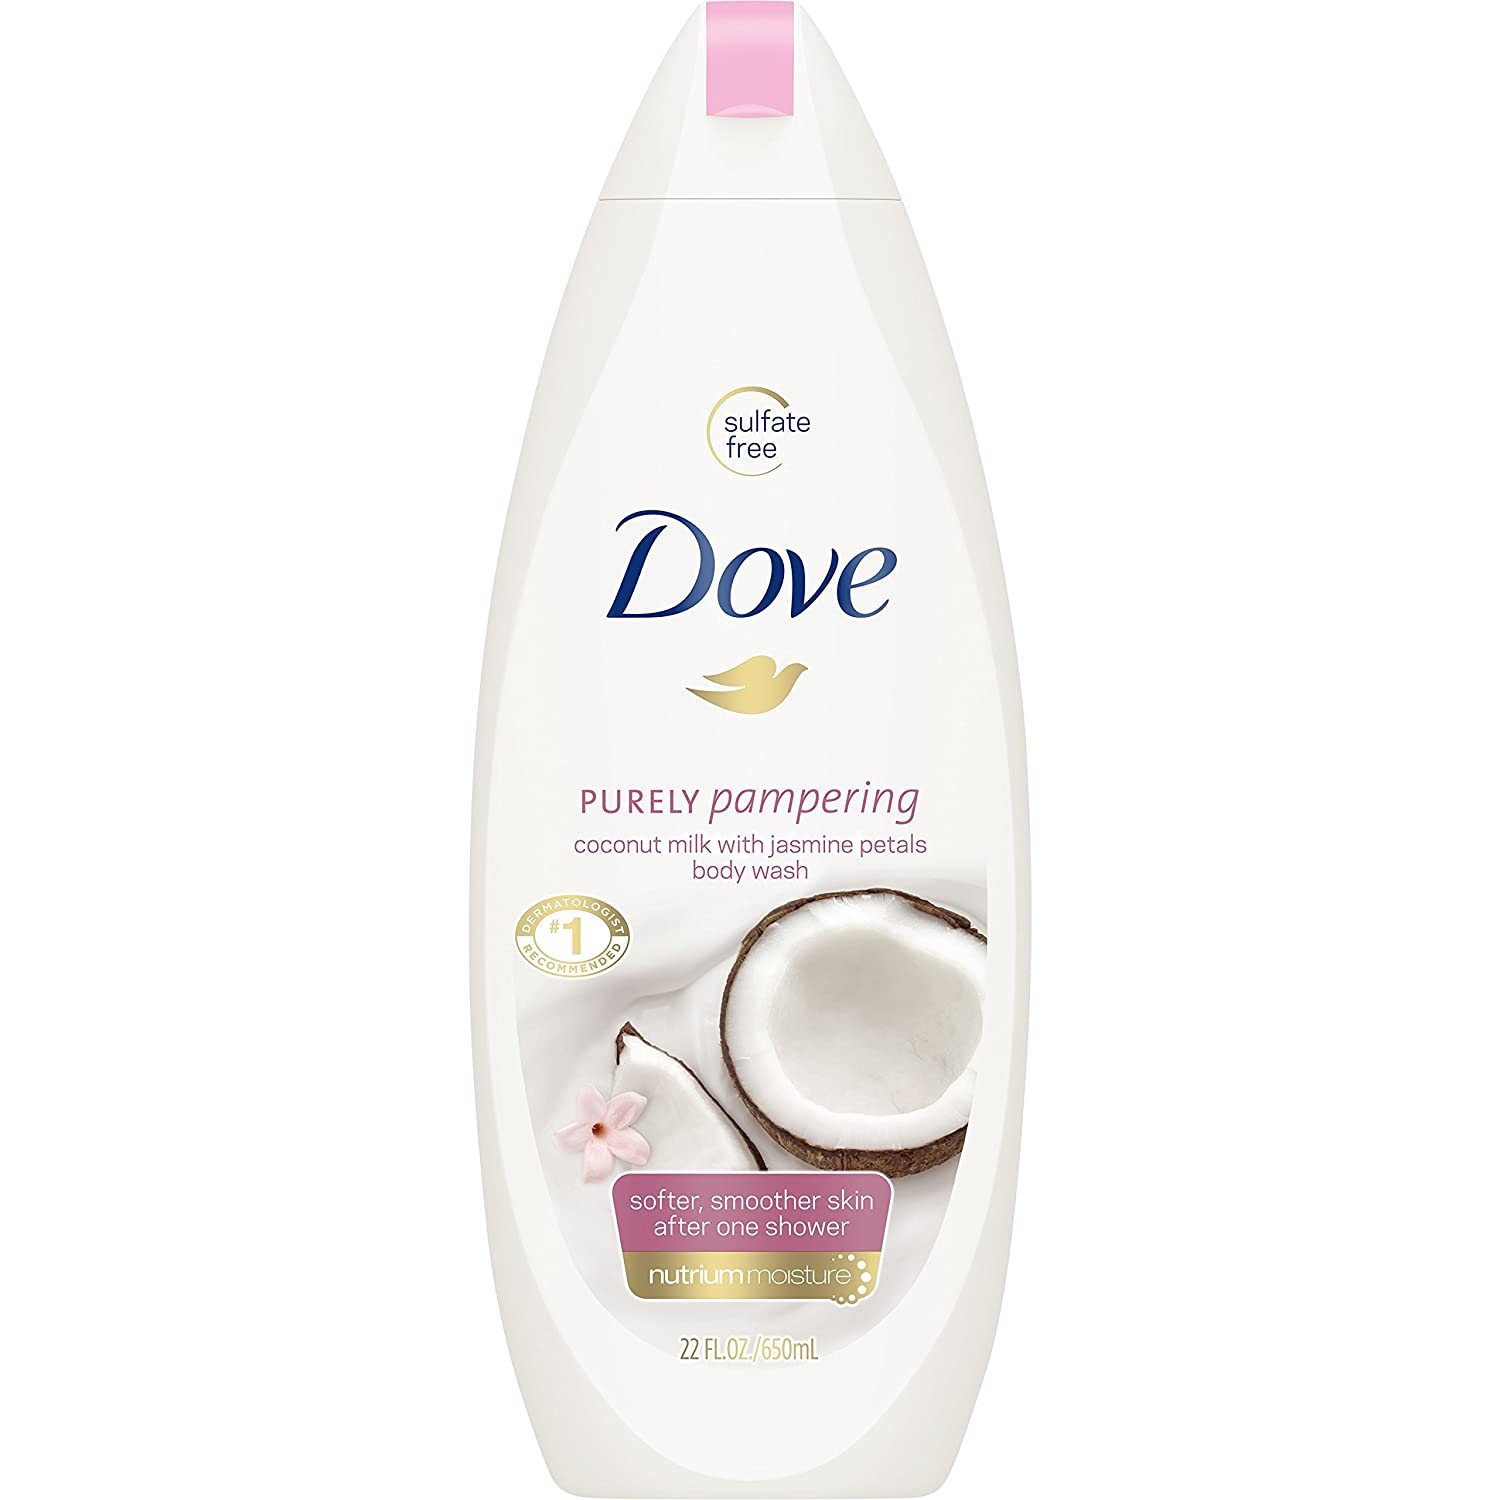 Dove Purely Pampering Body Wash, Coconut Milk with Jasmine Petals 22 oz